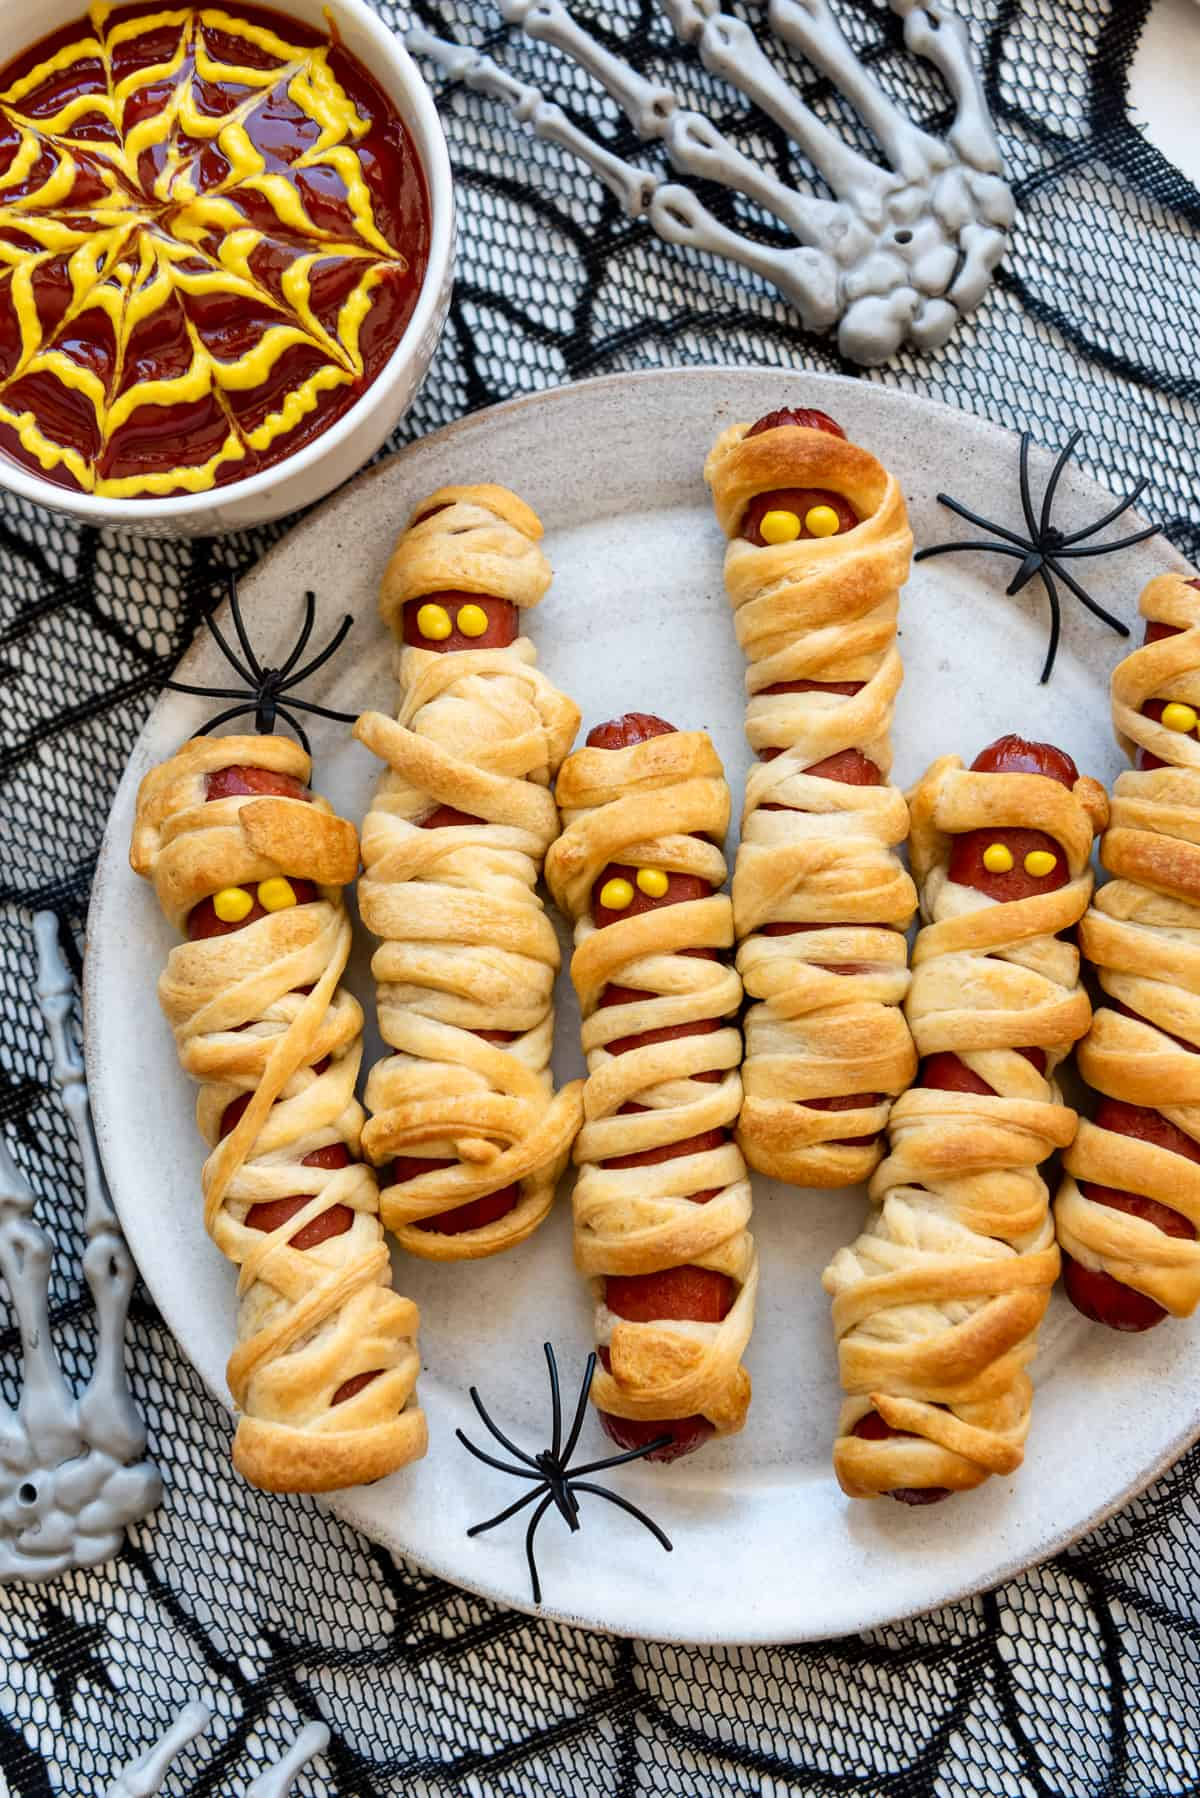 hot dogs wrapped in crescent roll dough with mustard eyes on a plate surrounded by plastic spiders.